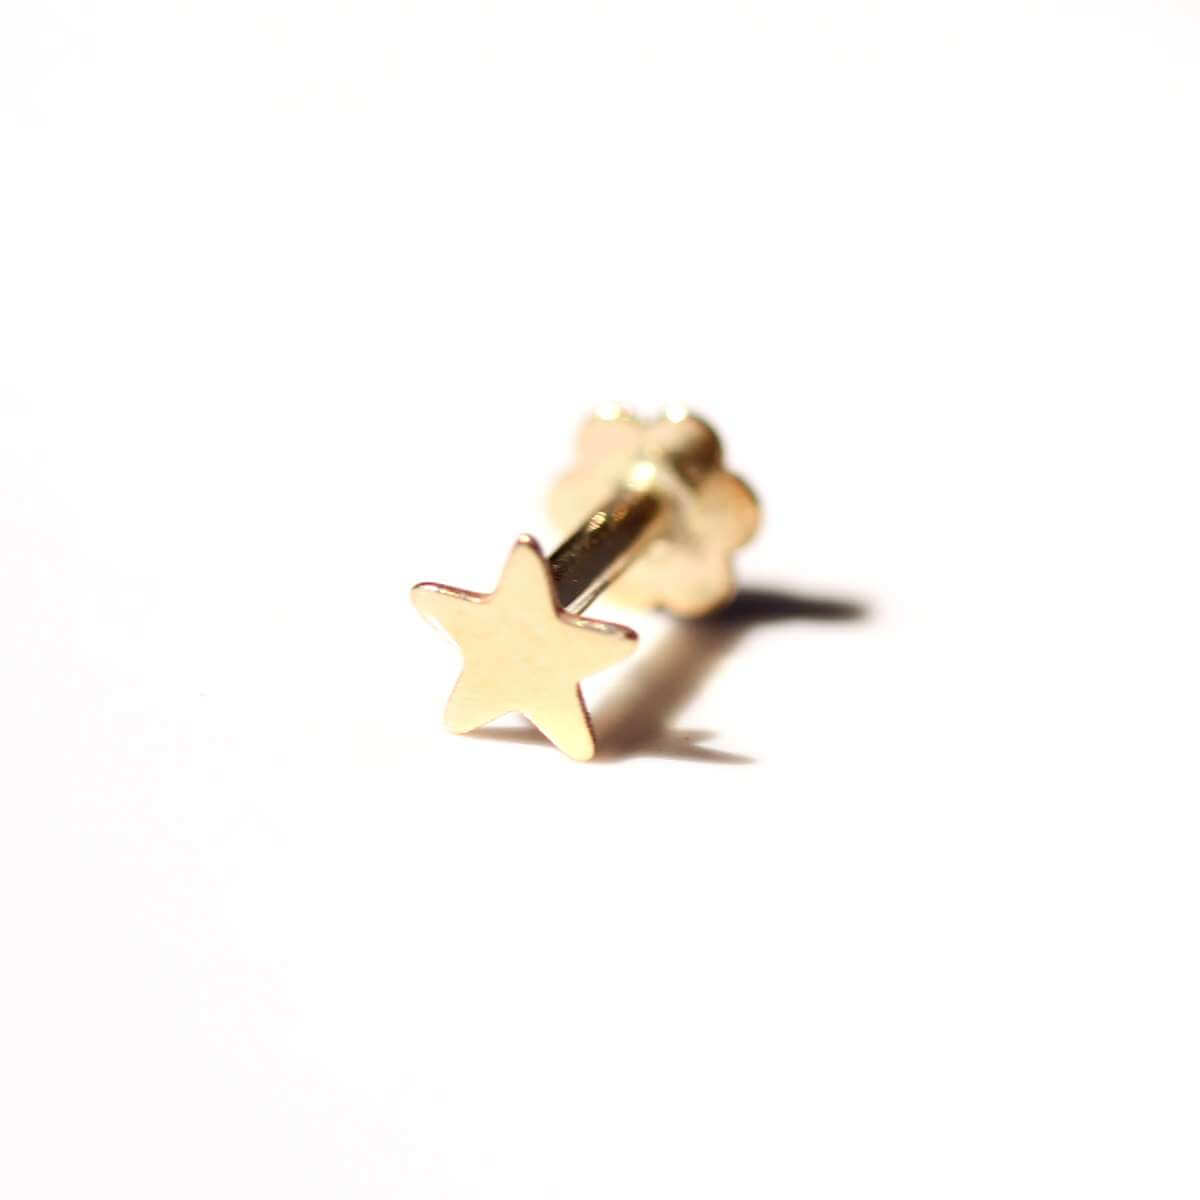 9ct Gold Star Labret Cartilage Piercing